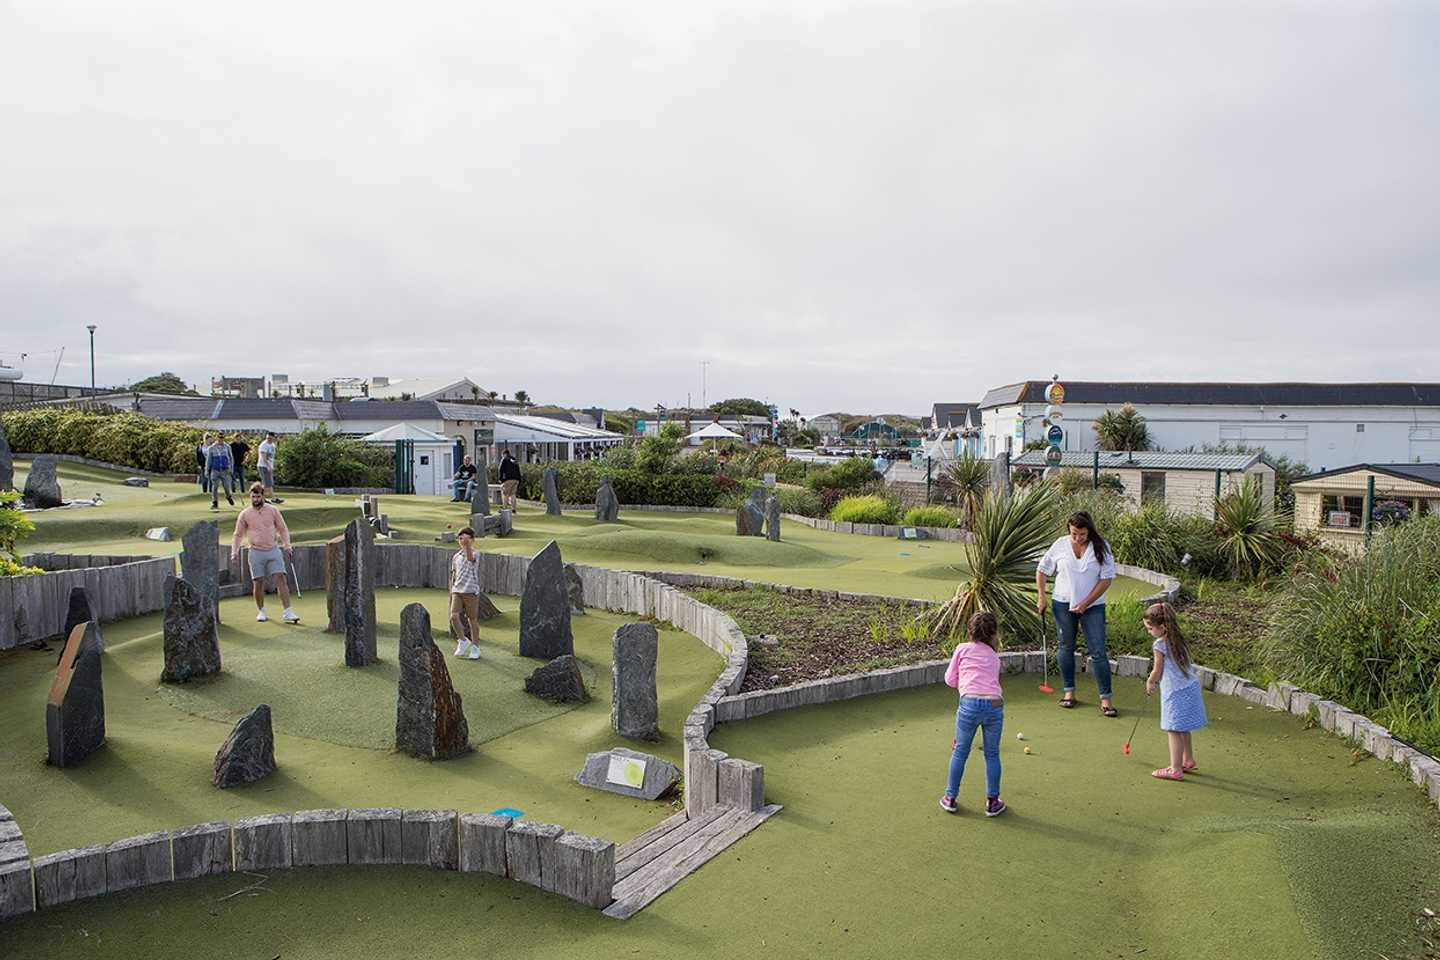 Guests playing on our Adventure Golf course